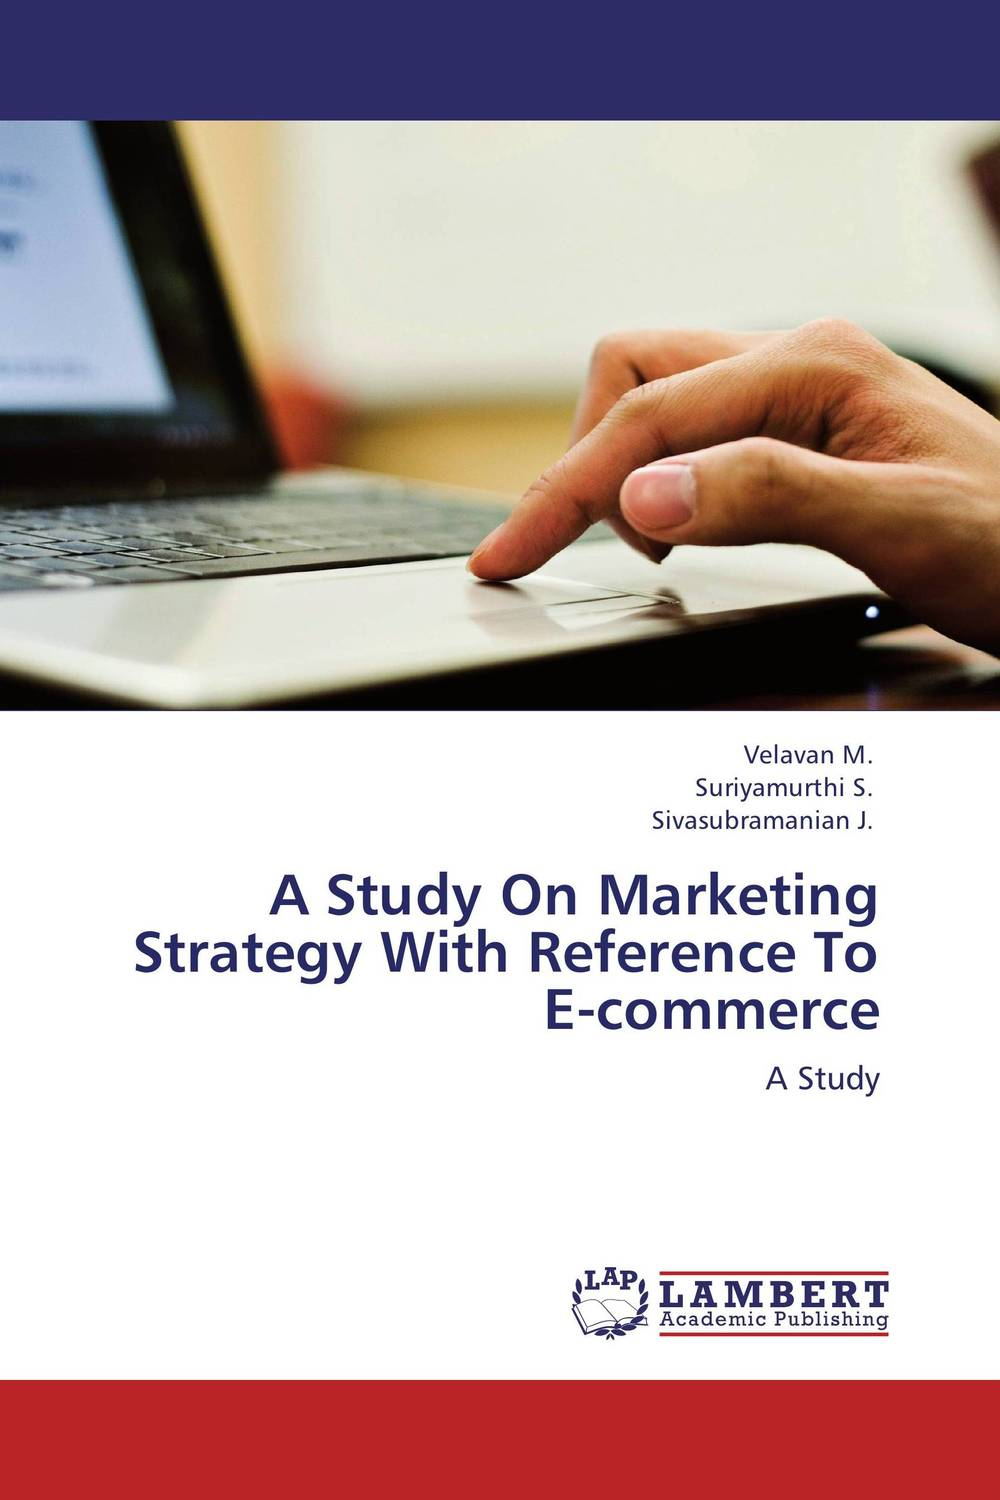 A Study On Marketing Strategy With Reference To E-commerce food e commerce